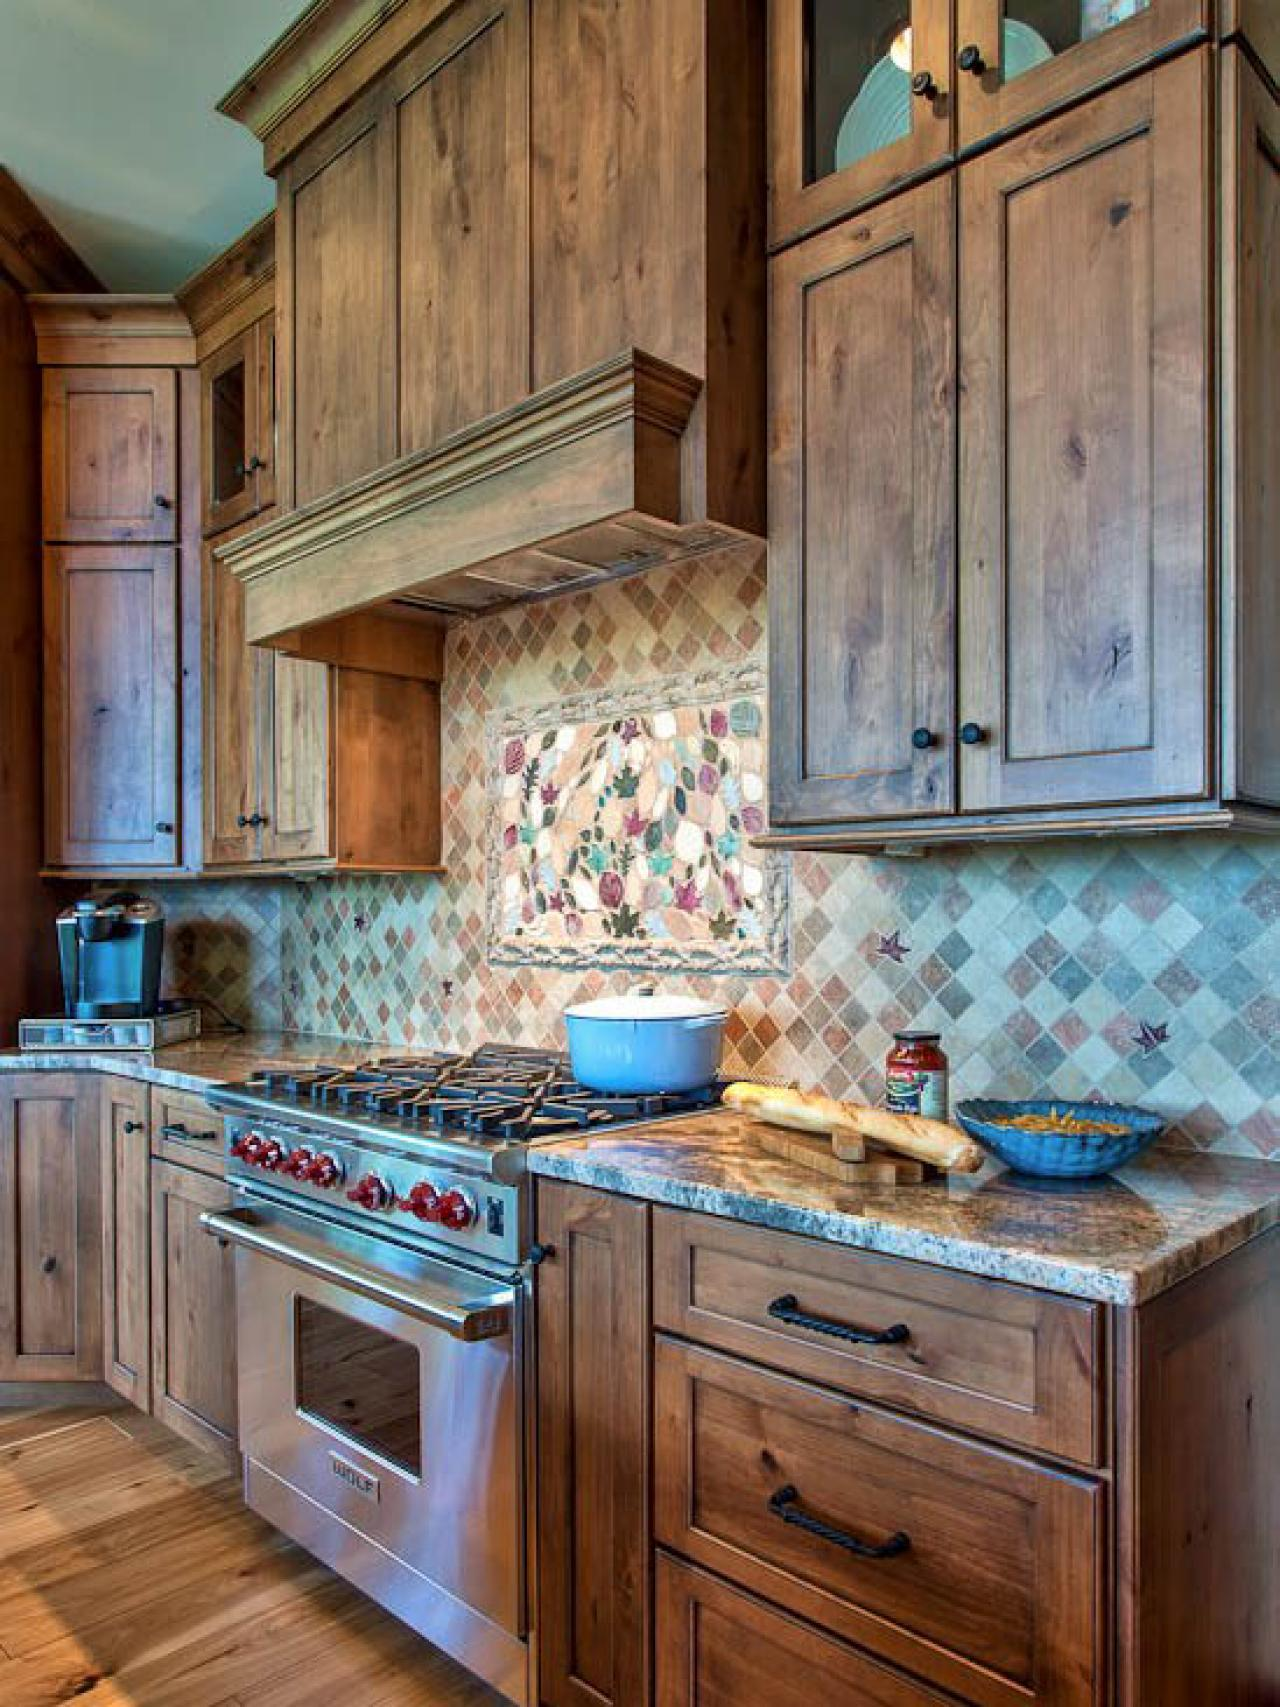 Best way to paint kitchen cabinets hgtv pictures ideas for Looking for kitchen